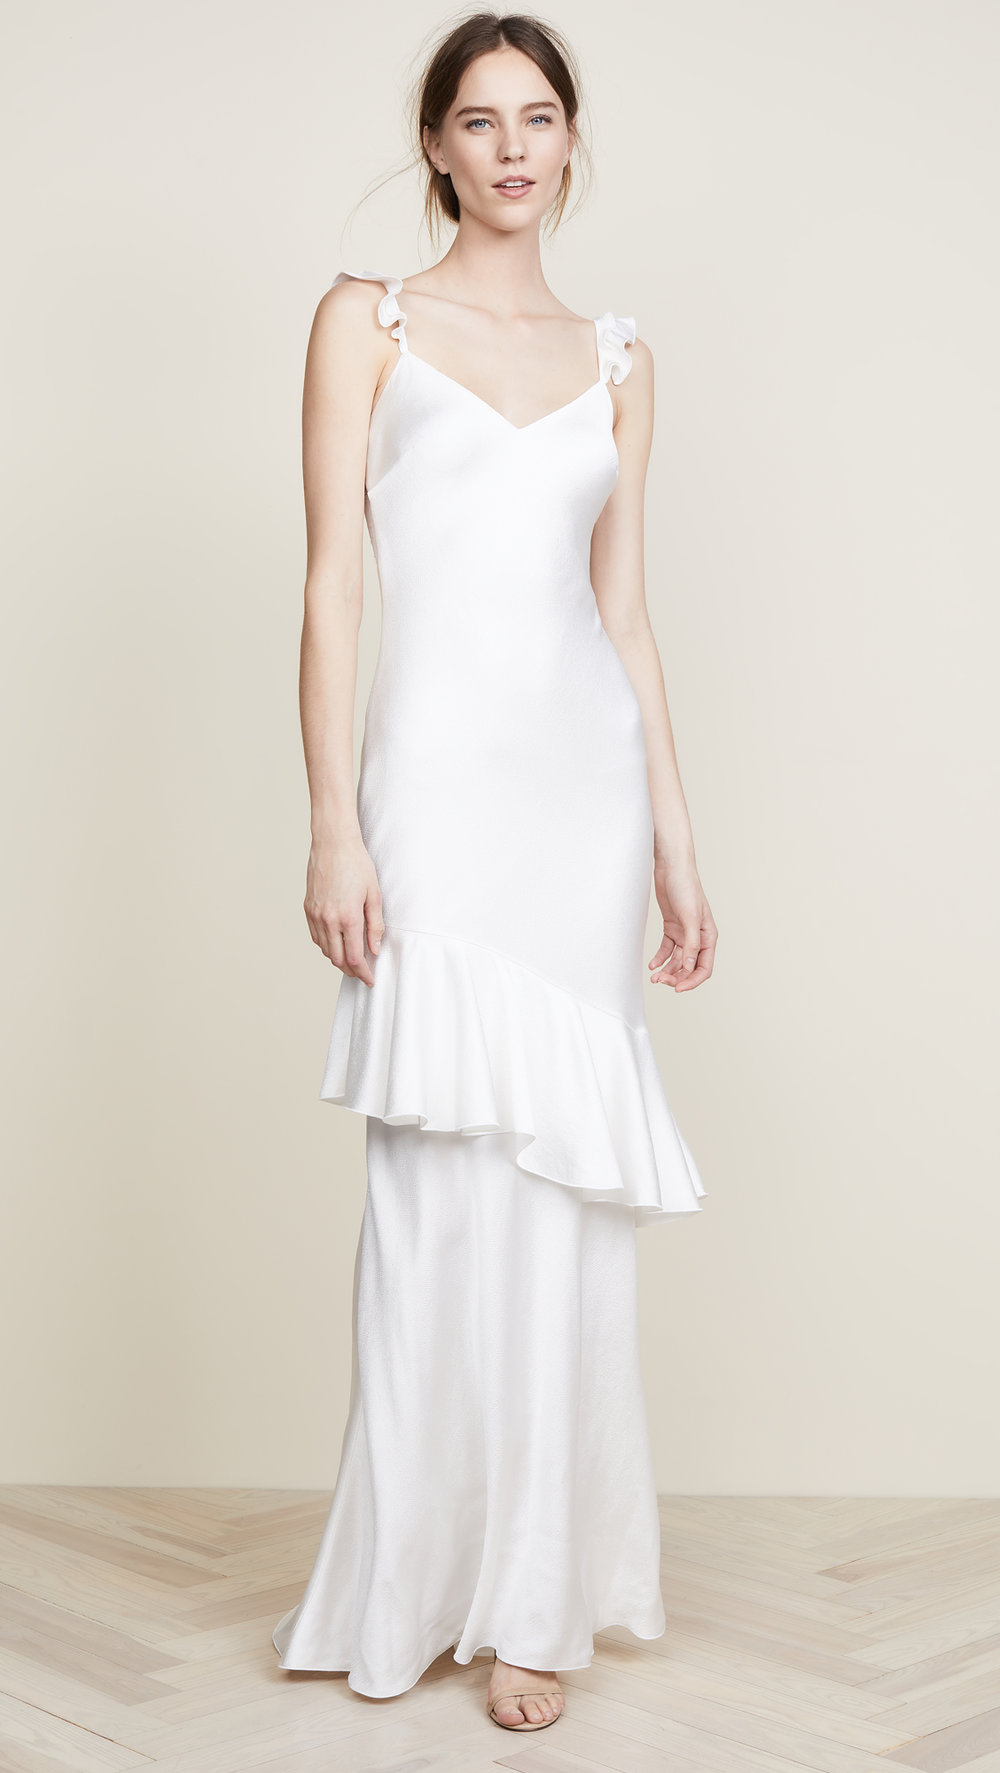 NICOLINA DRESS BY RACHEL ZOE, ON SALE FOR $437.50 AT SHOPBOP.COM